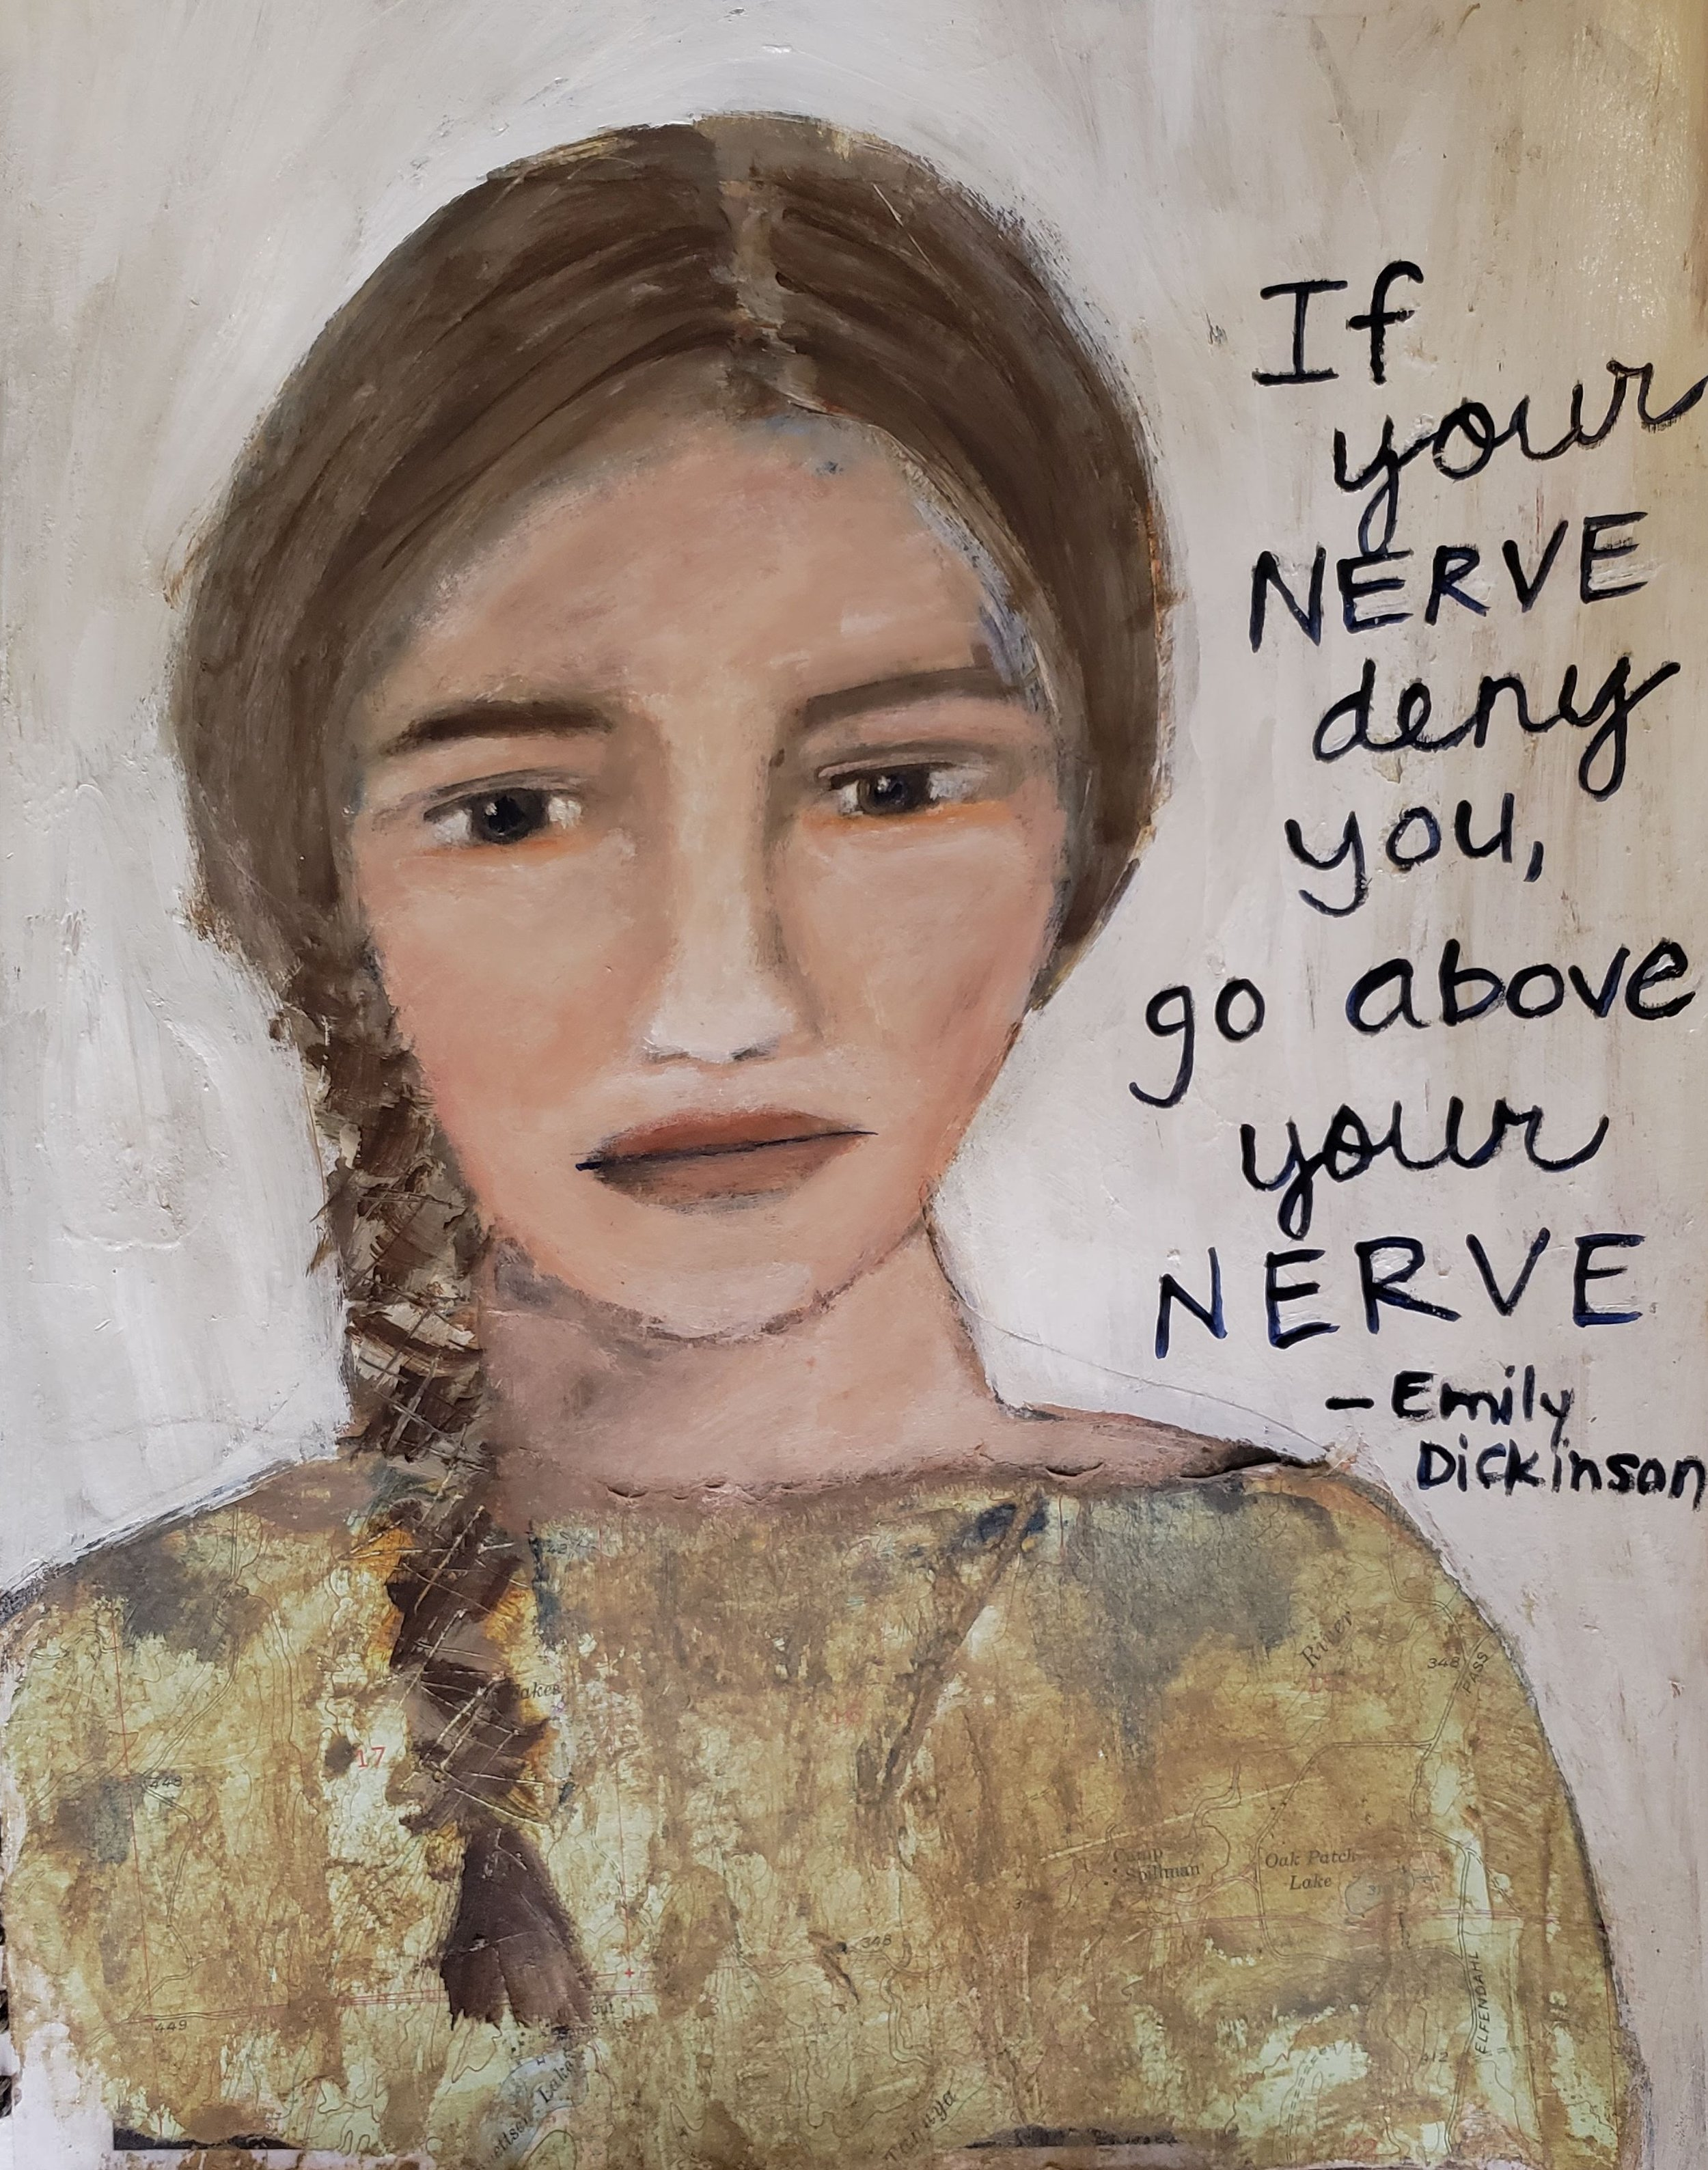 If your nerve deny you, go about your nerve. —Emily Dickinson